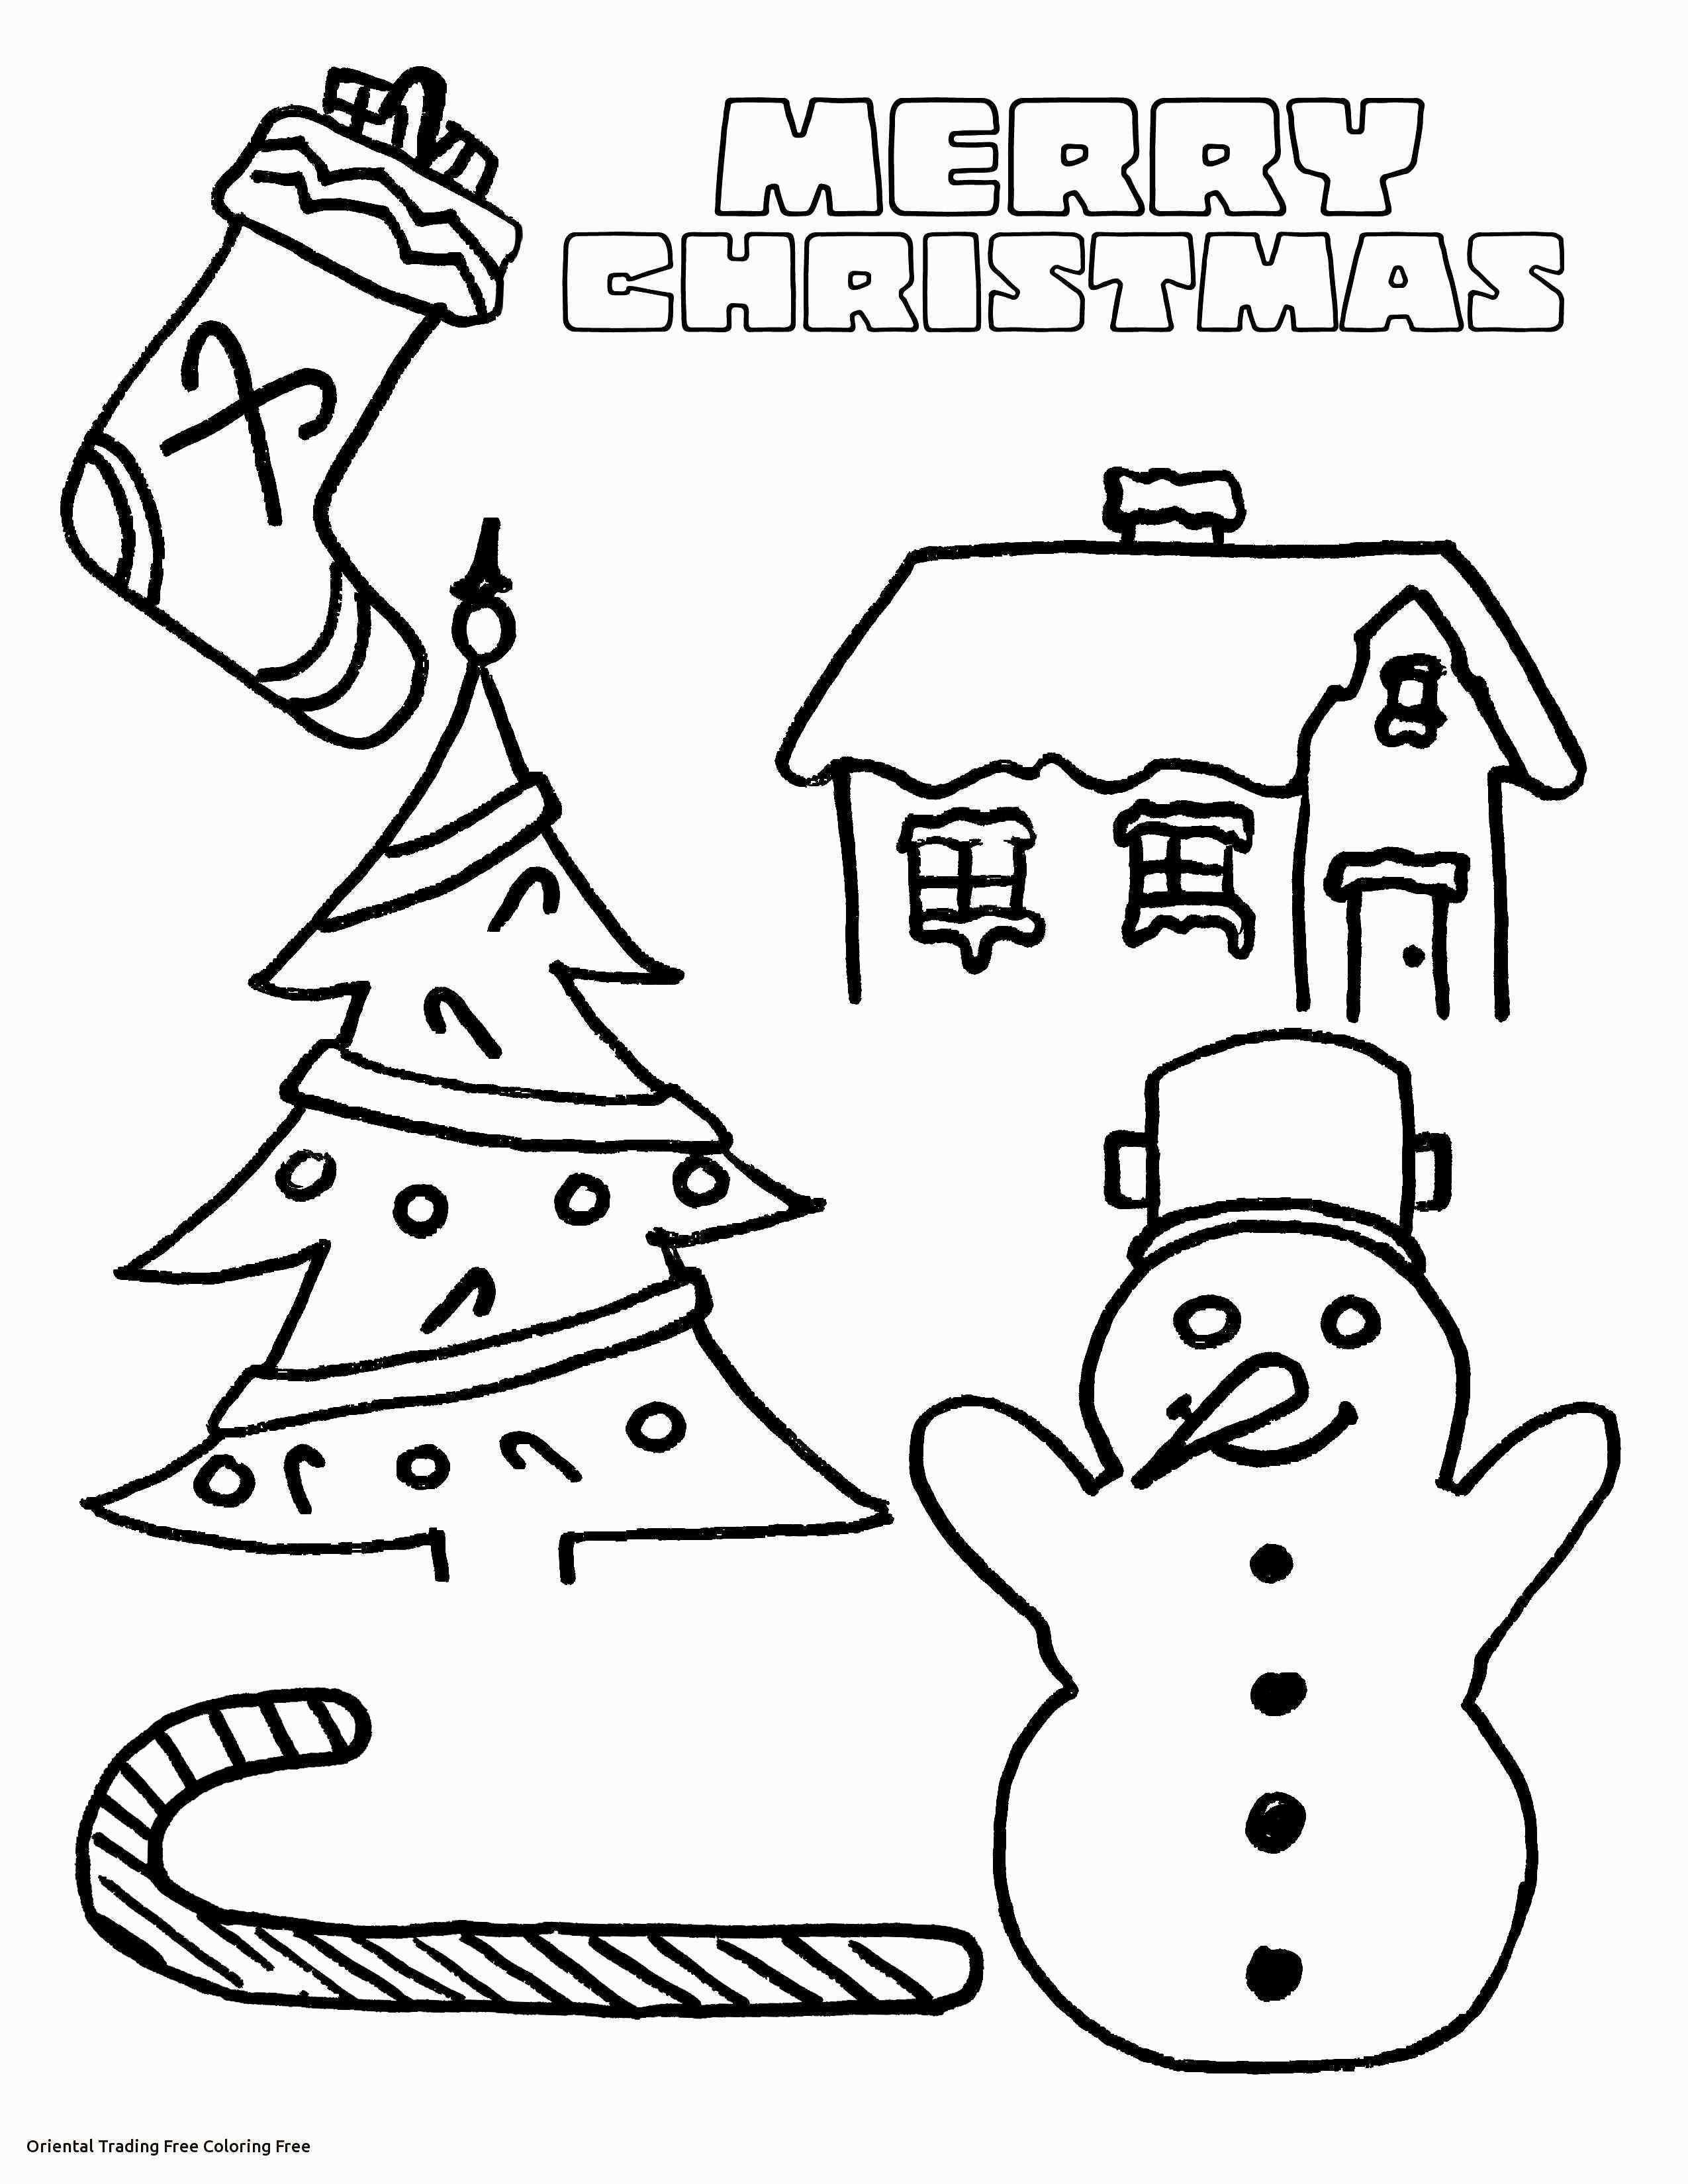 12 Essential Steps To Awesome Christmas Drawings For Kids Step By Step Prekhome Printable Christmas Coloring Pages Merry Christmas Coloring Pages Free Christmas Coloring Pages